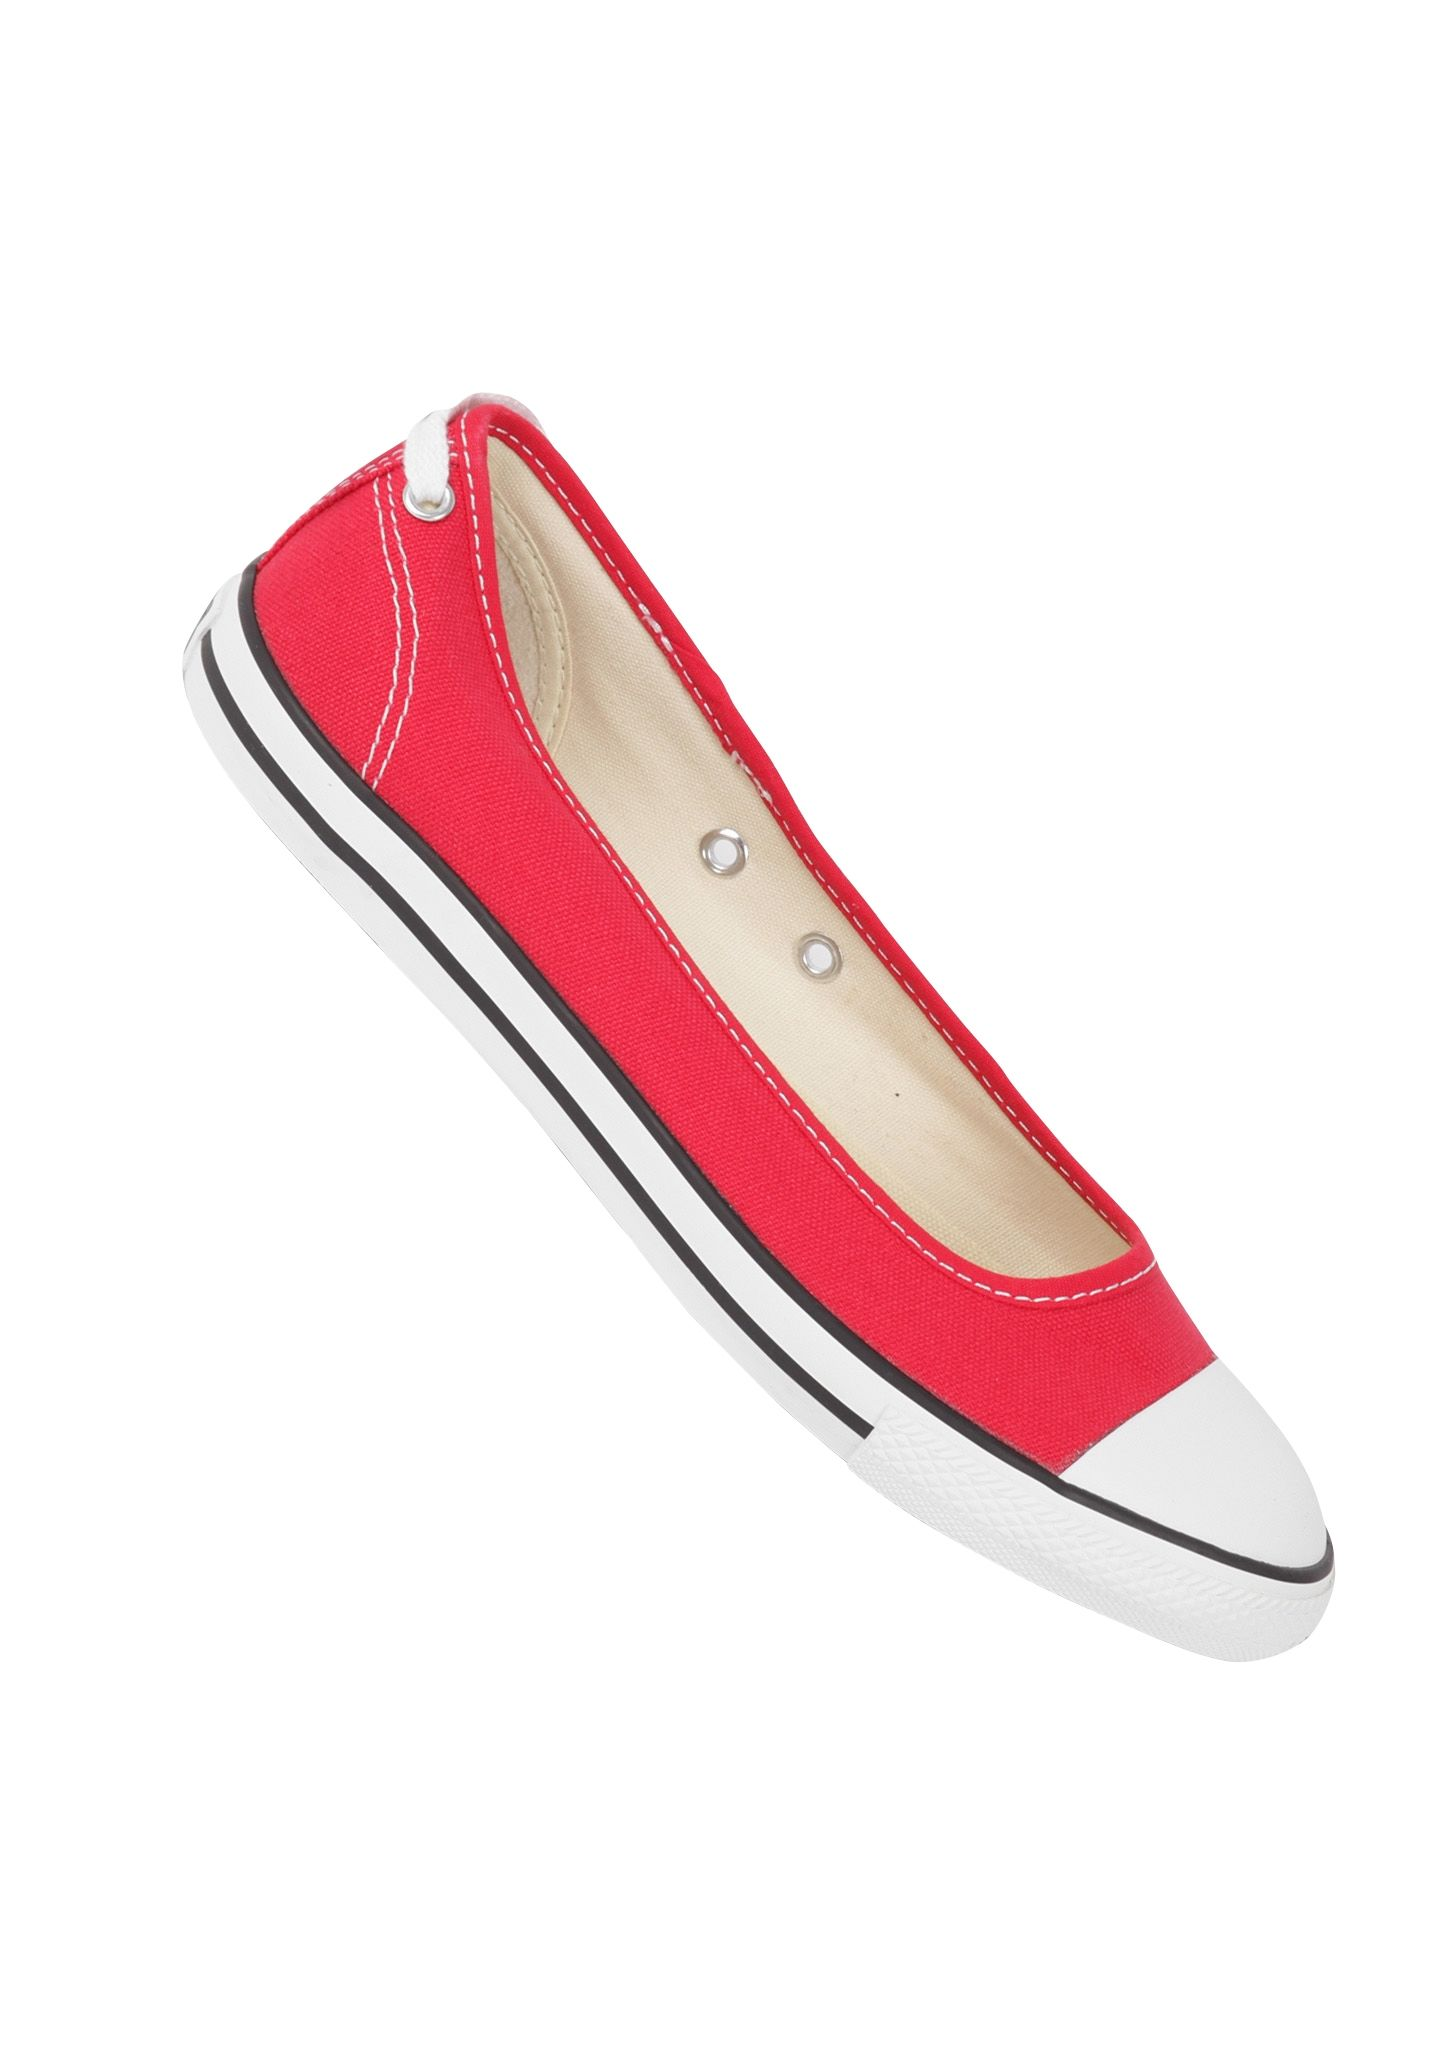 fdd5893fbd11b3 ... Sneakers For Women Red Planet Sports. Converse Chuck Taylor All Star  Dainty Ballerina Slip Ox Canvas